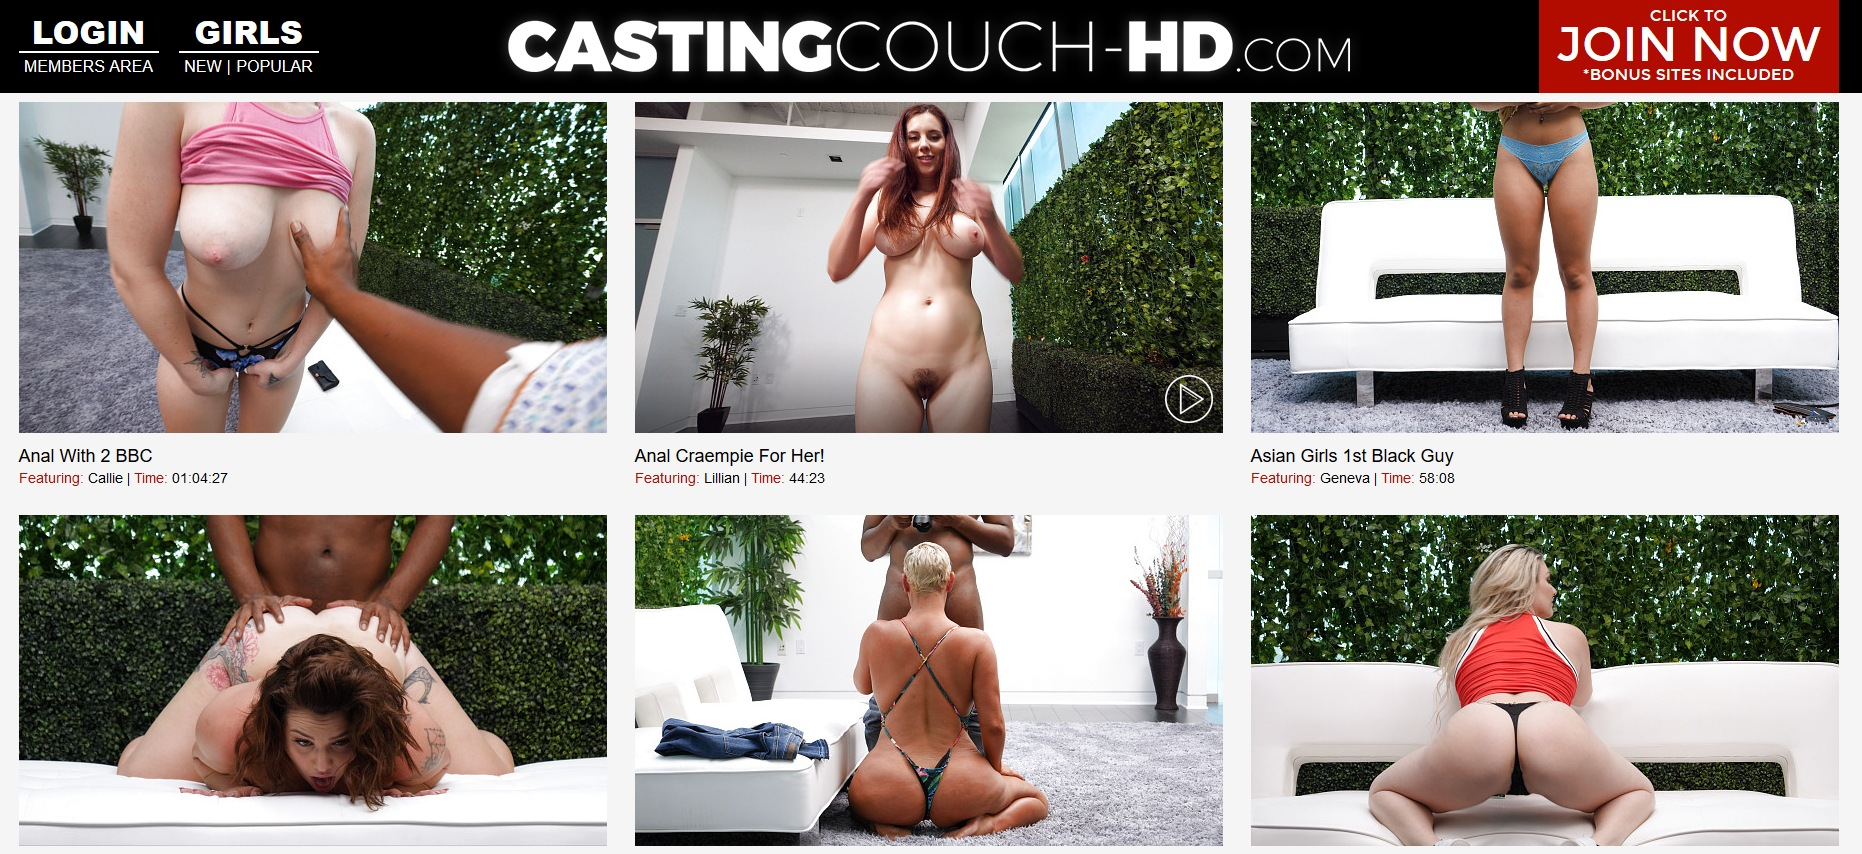 castingcouch-hd